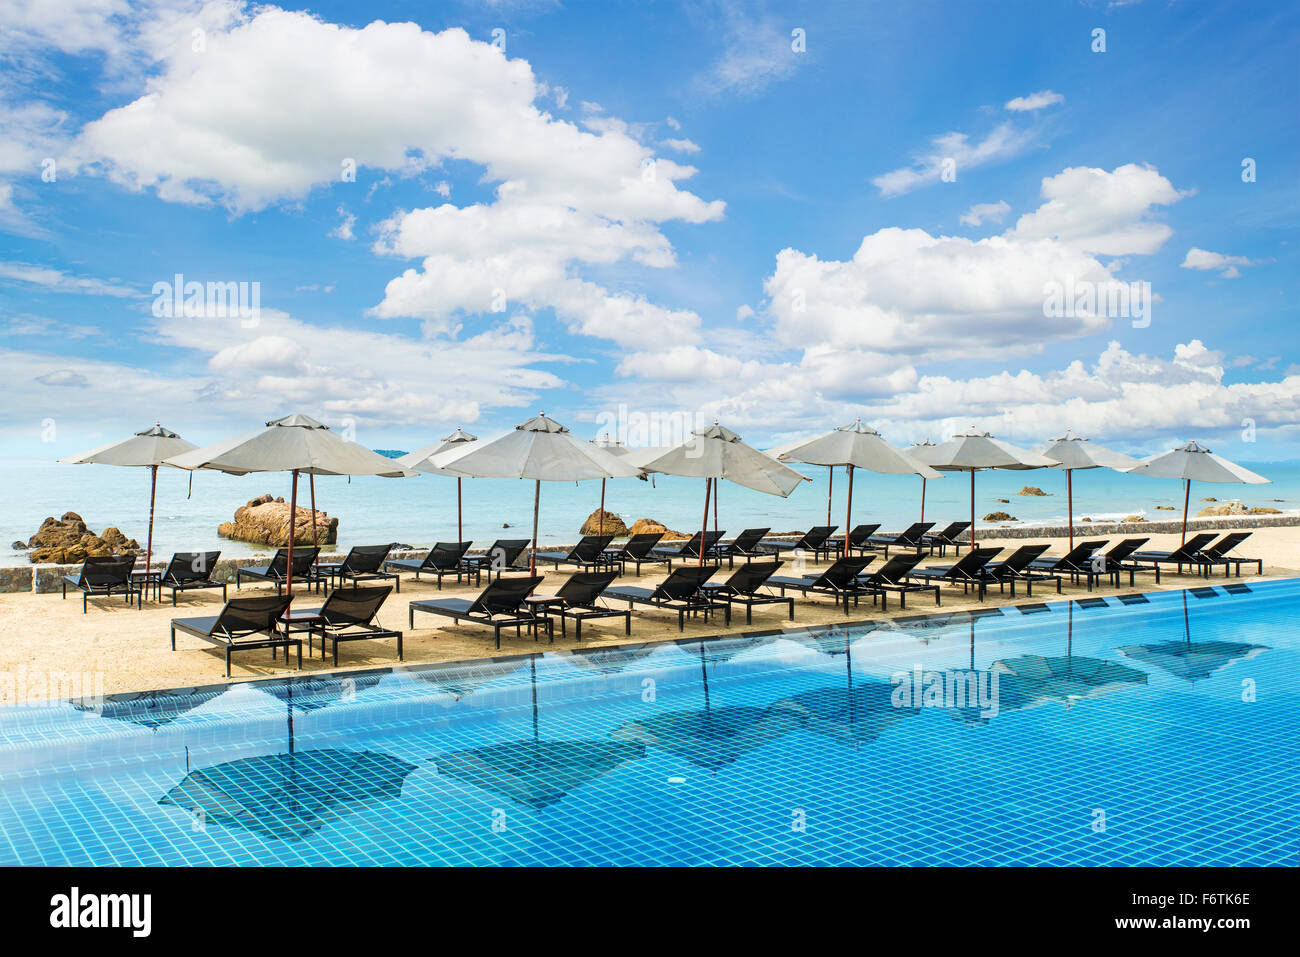 Summer, Travel, Vacation and Holiday concept - Tropical beach resort with lounge chairs and umbrellas in Phuket - Stock Image